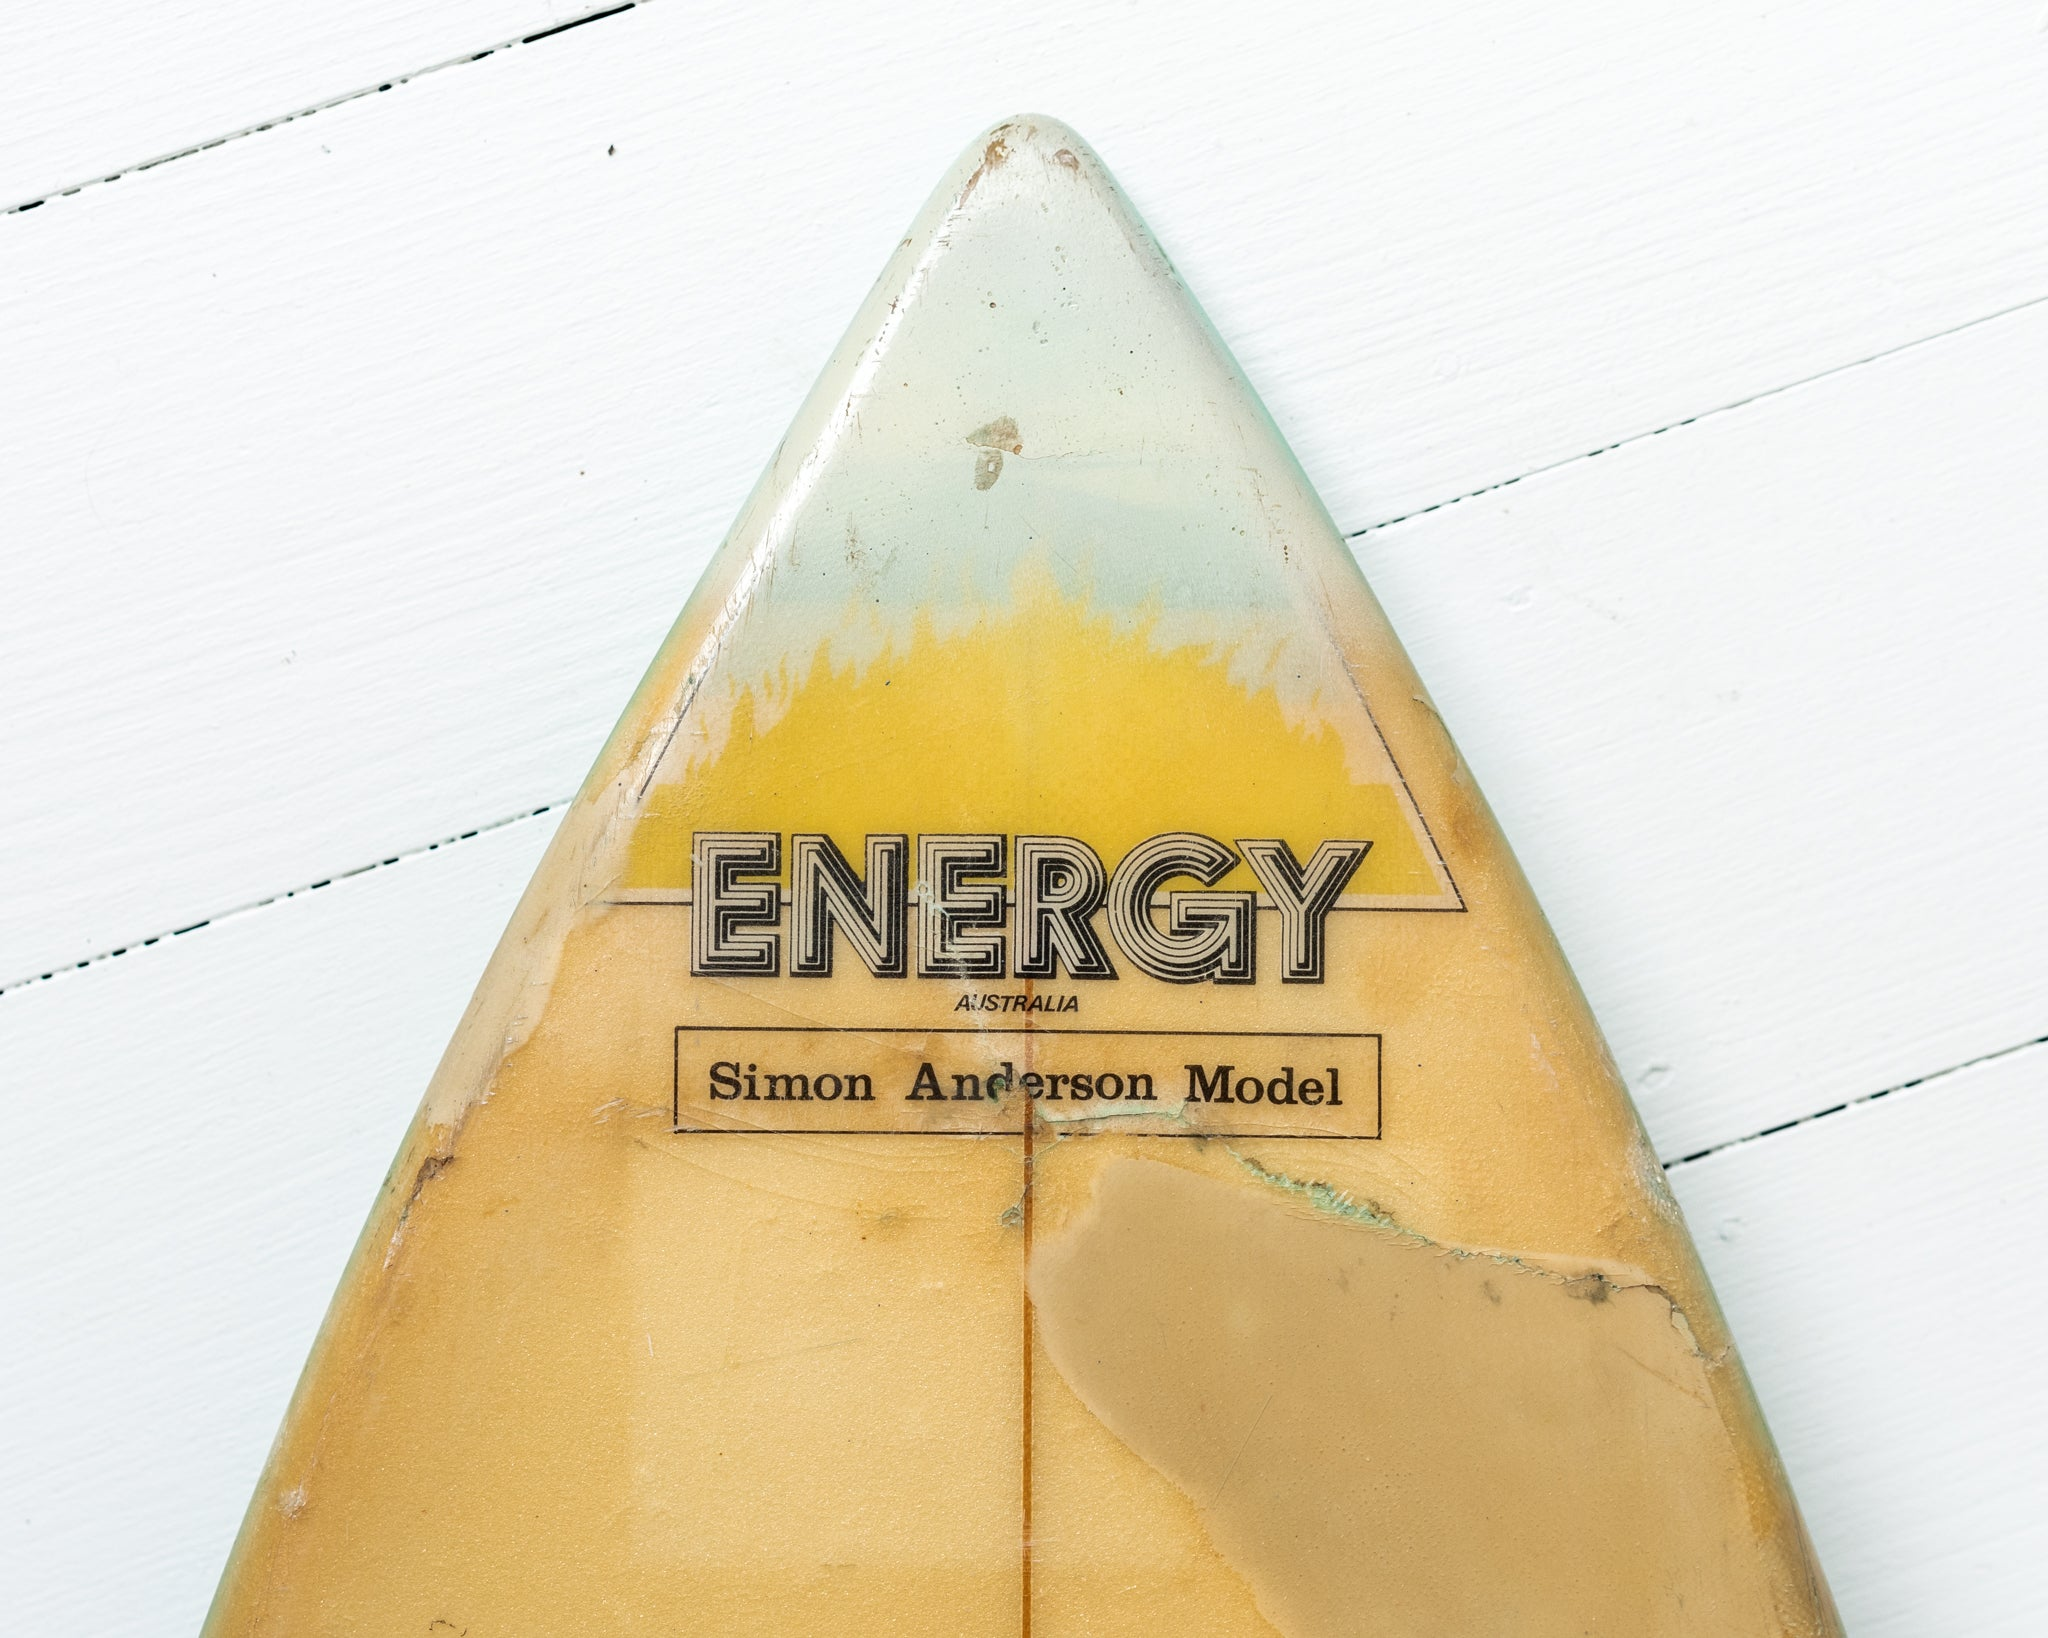 ENERGY